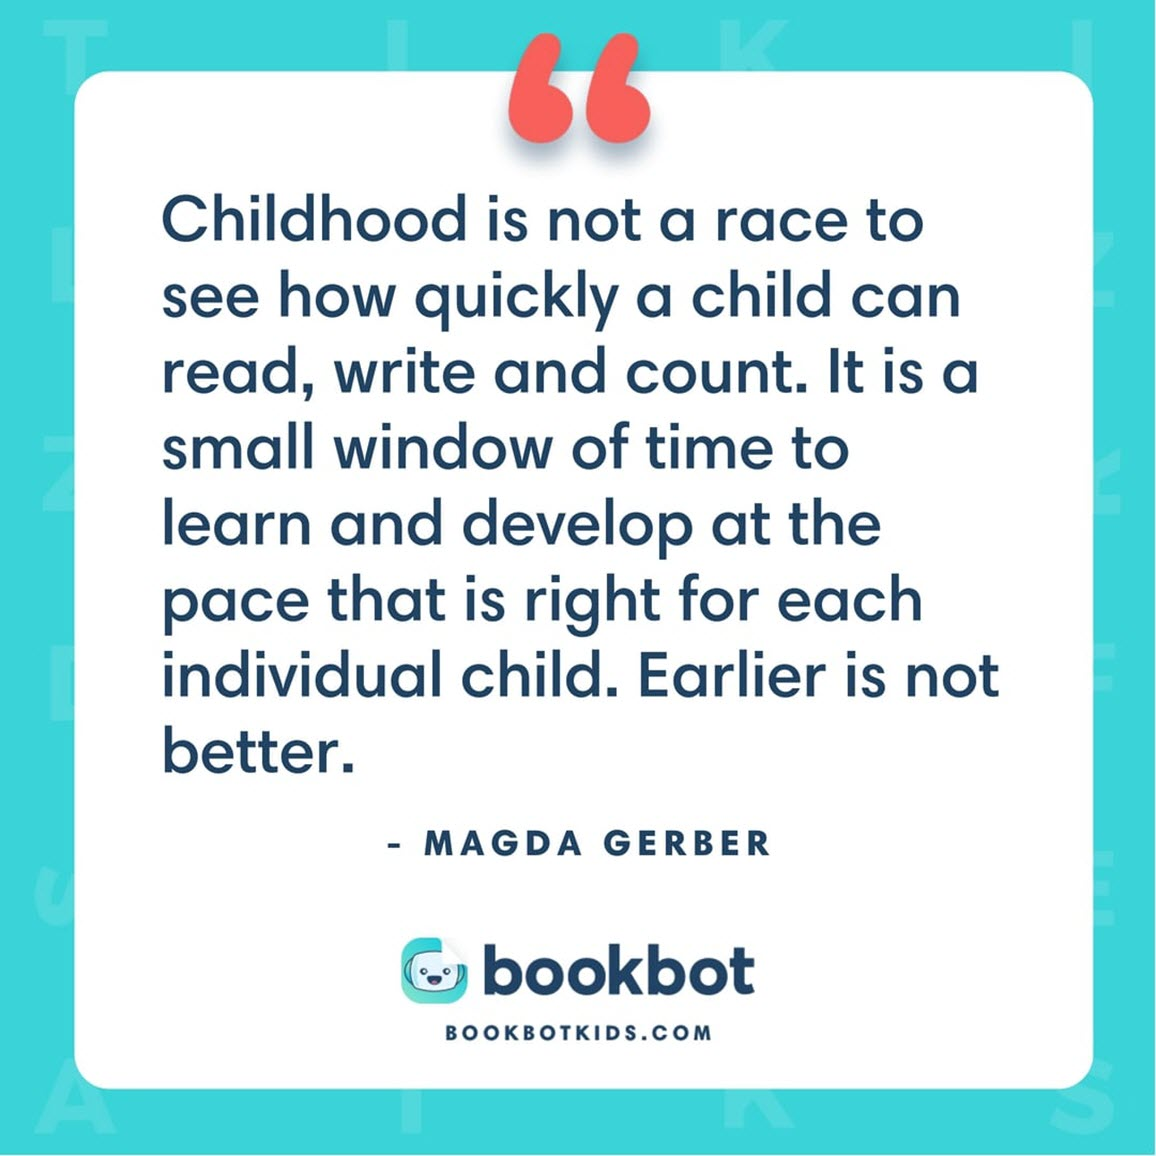 Childhood is not a race to see how quickly a child can read, write and count. It is a small window of time to learn and develop at the pace that is right for each individual child. Earlier is not better. – Magda Gerber